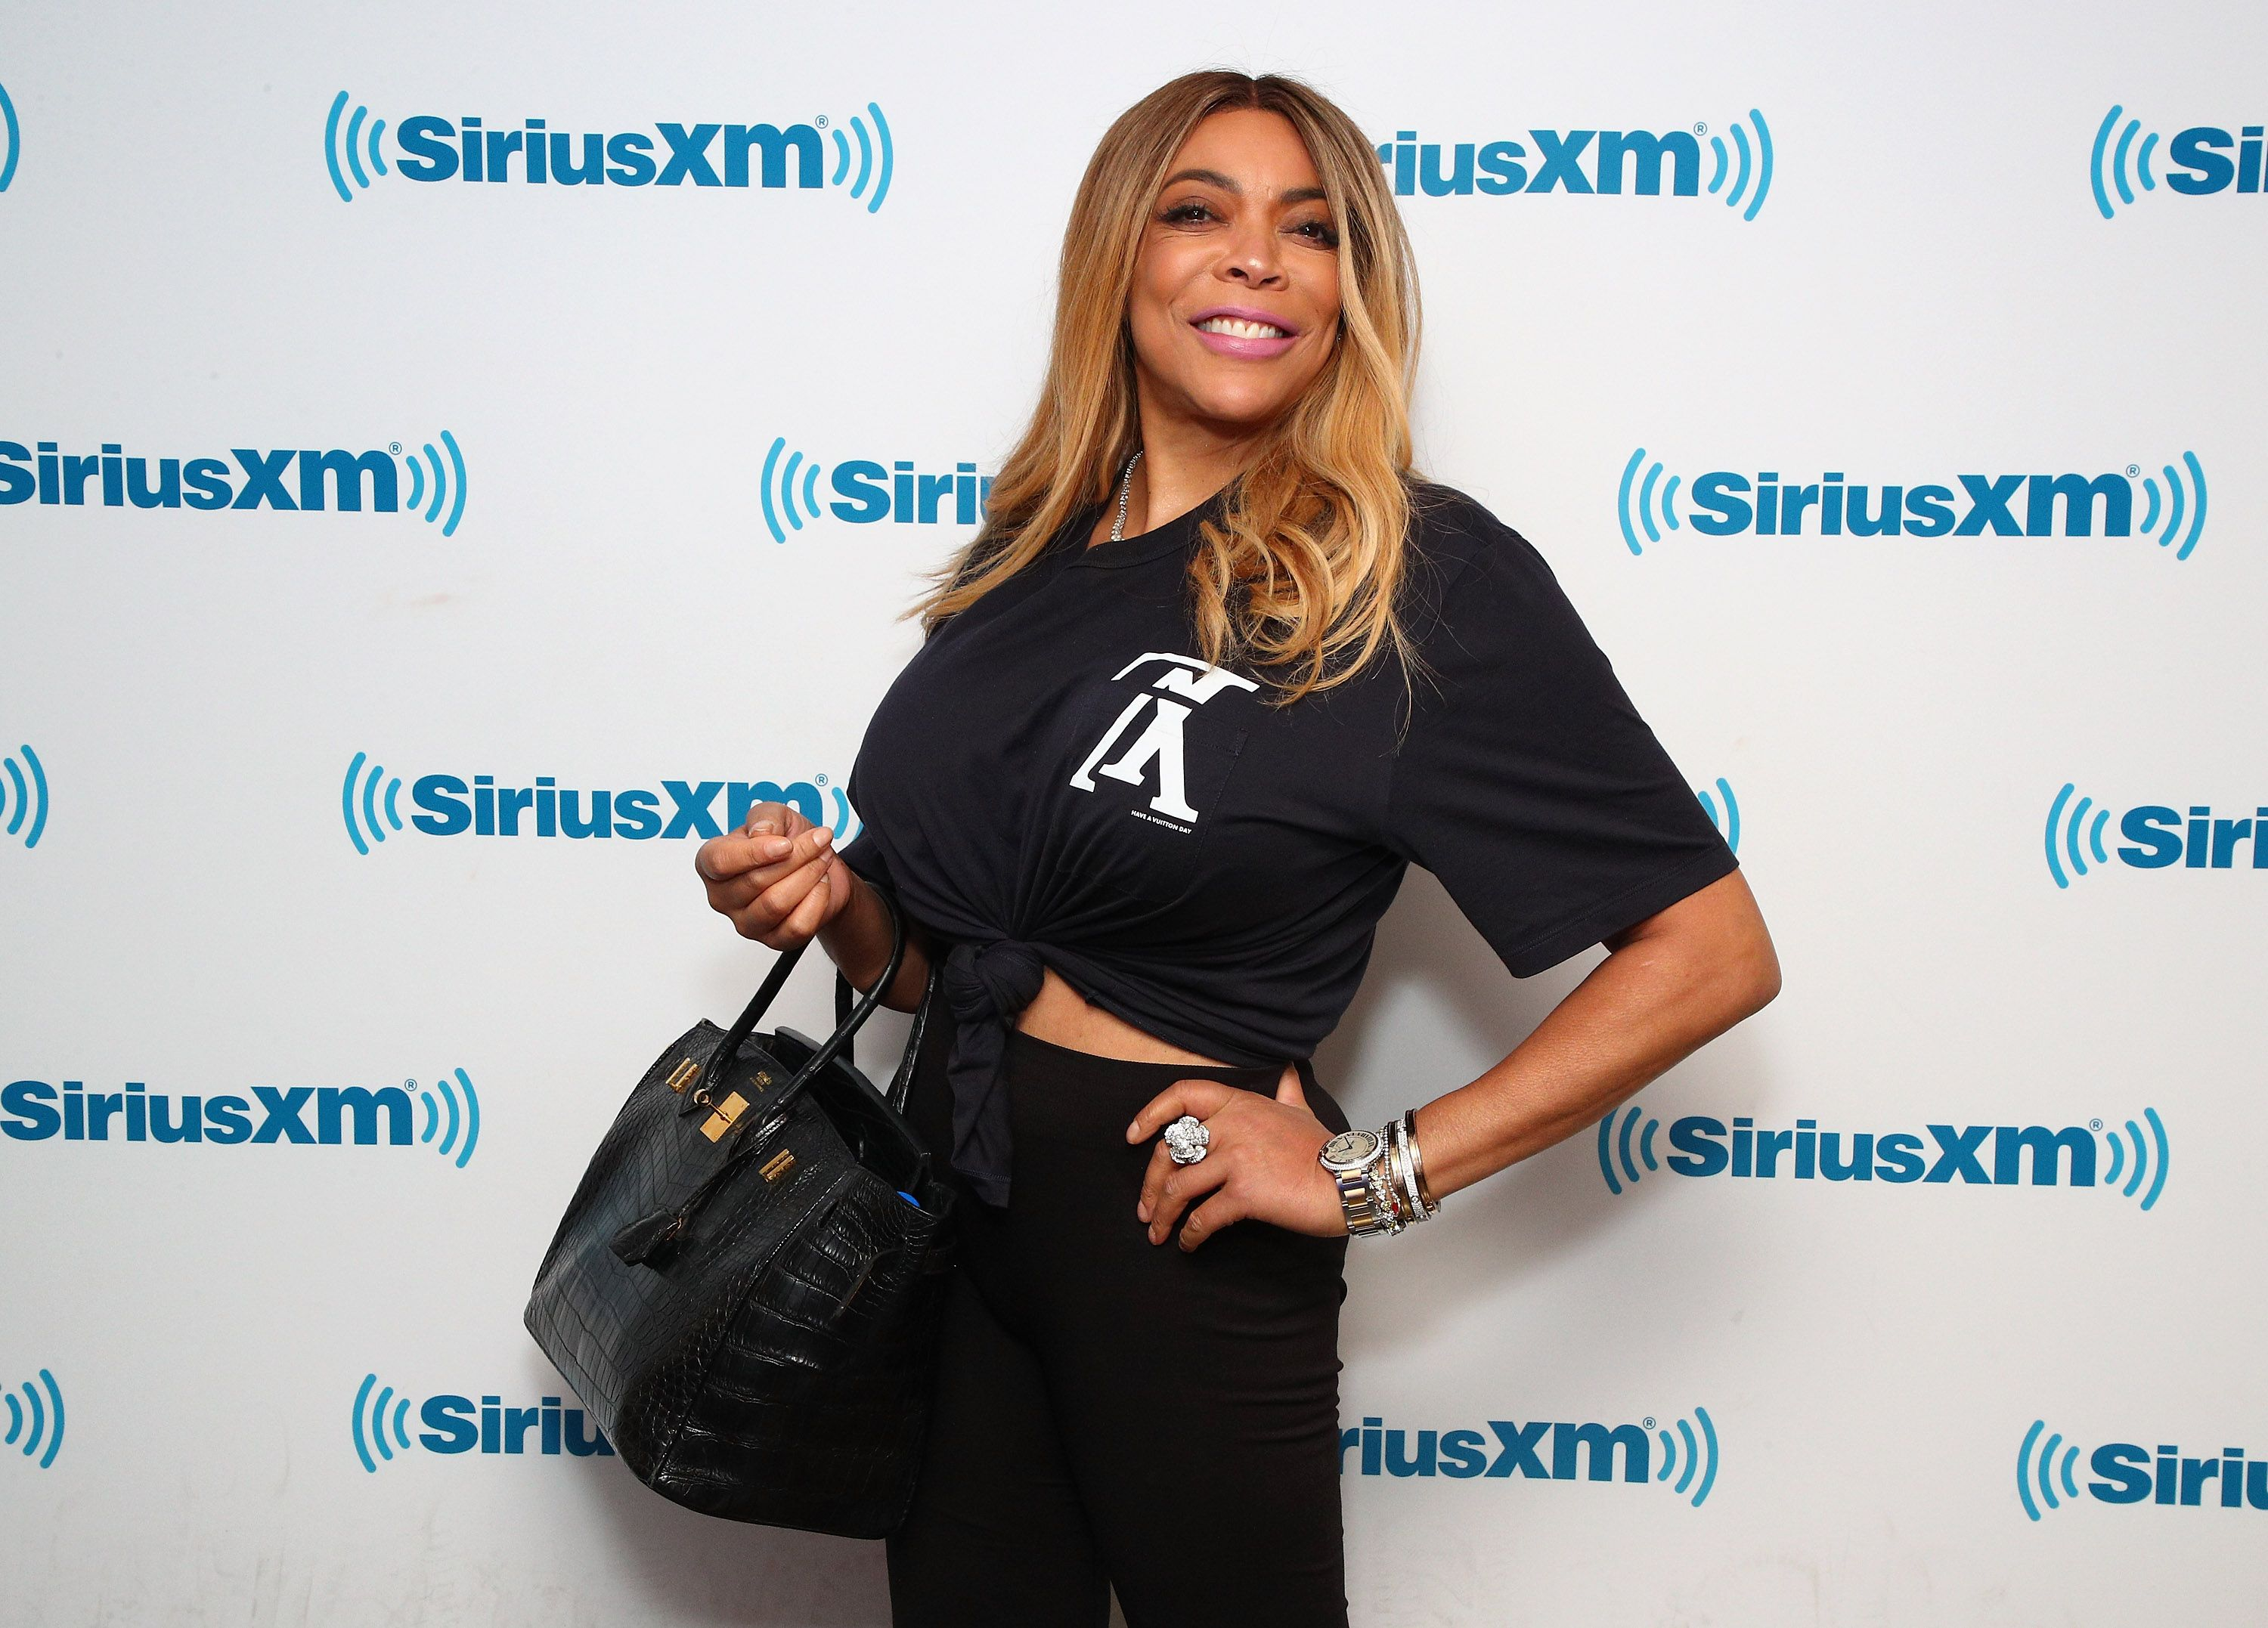 Wendy Williams at a SiriusXM event